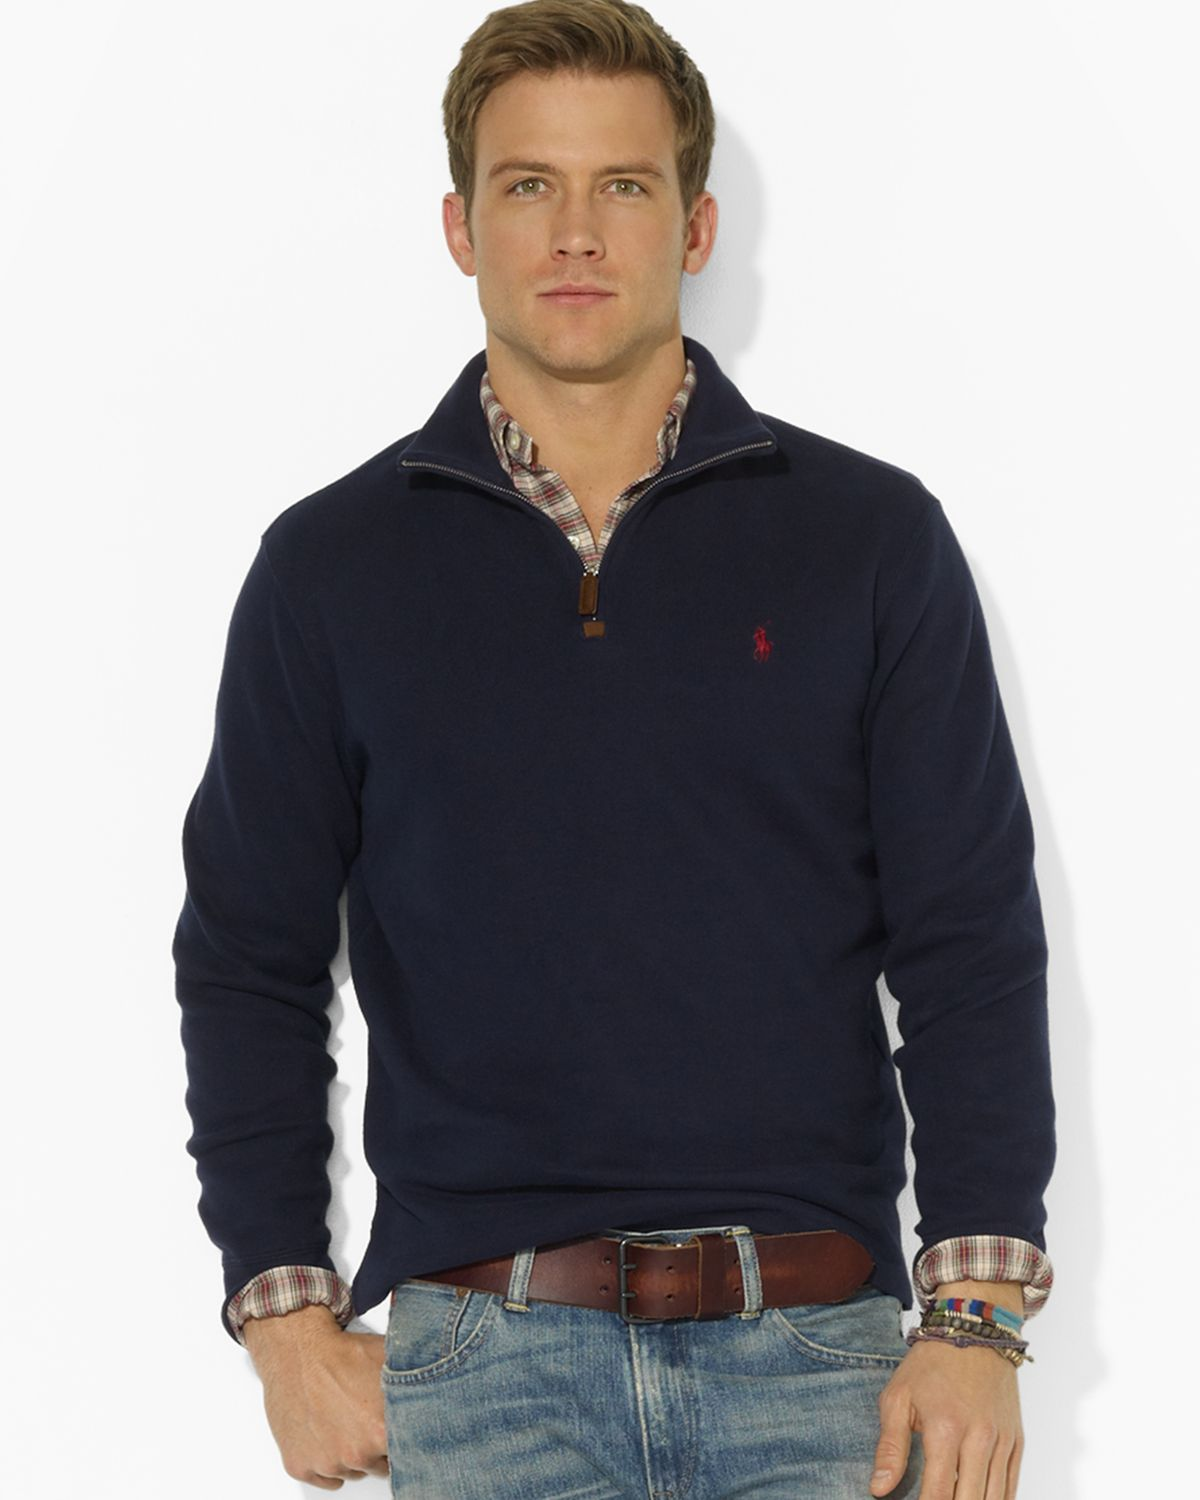 Ralph lauren Polo French-rib Halfzip Mock-neck Pullover Sweater in ...